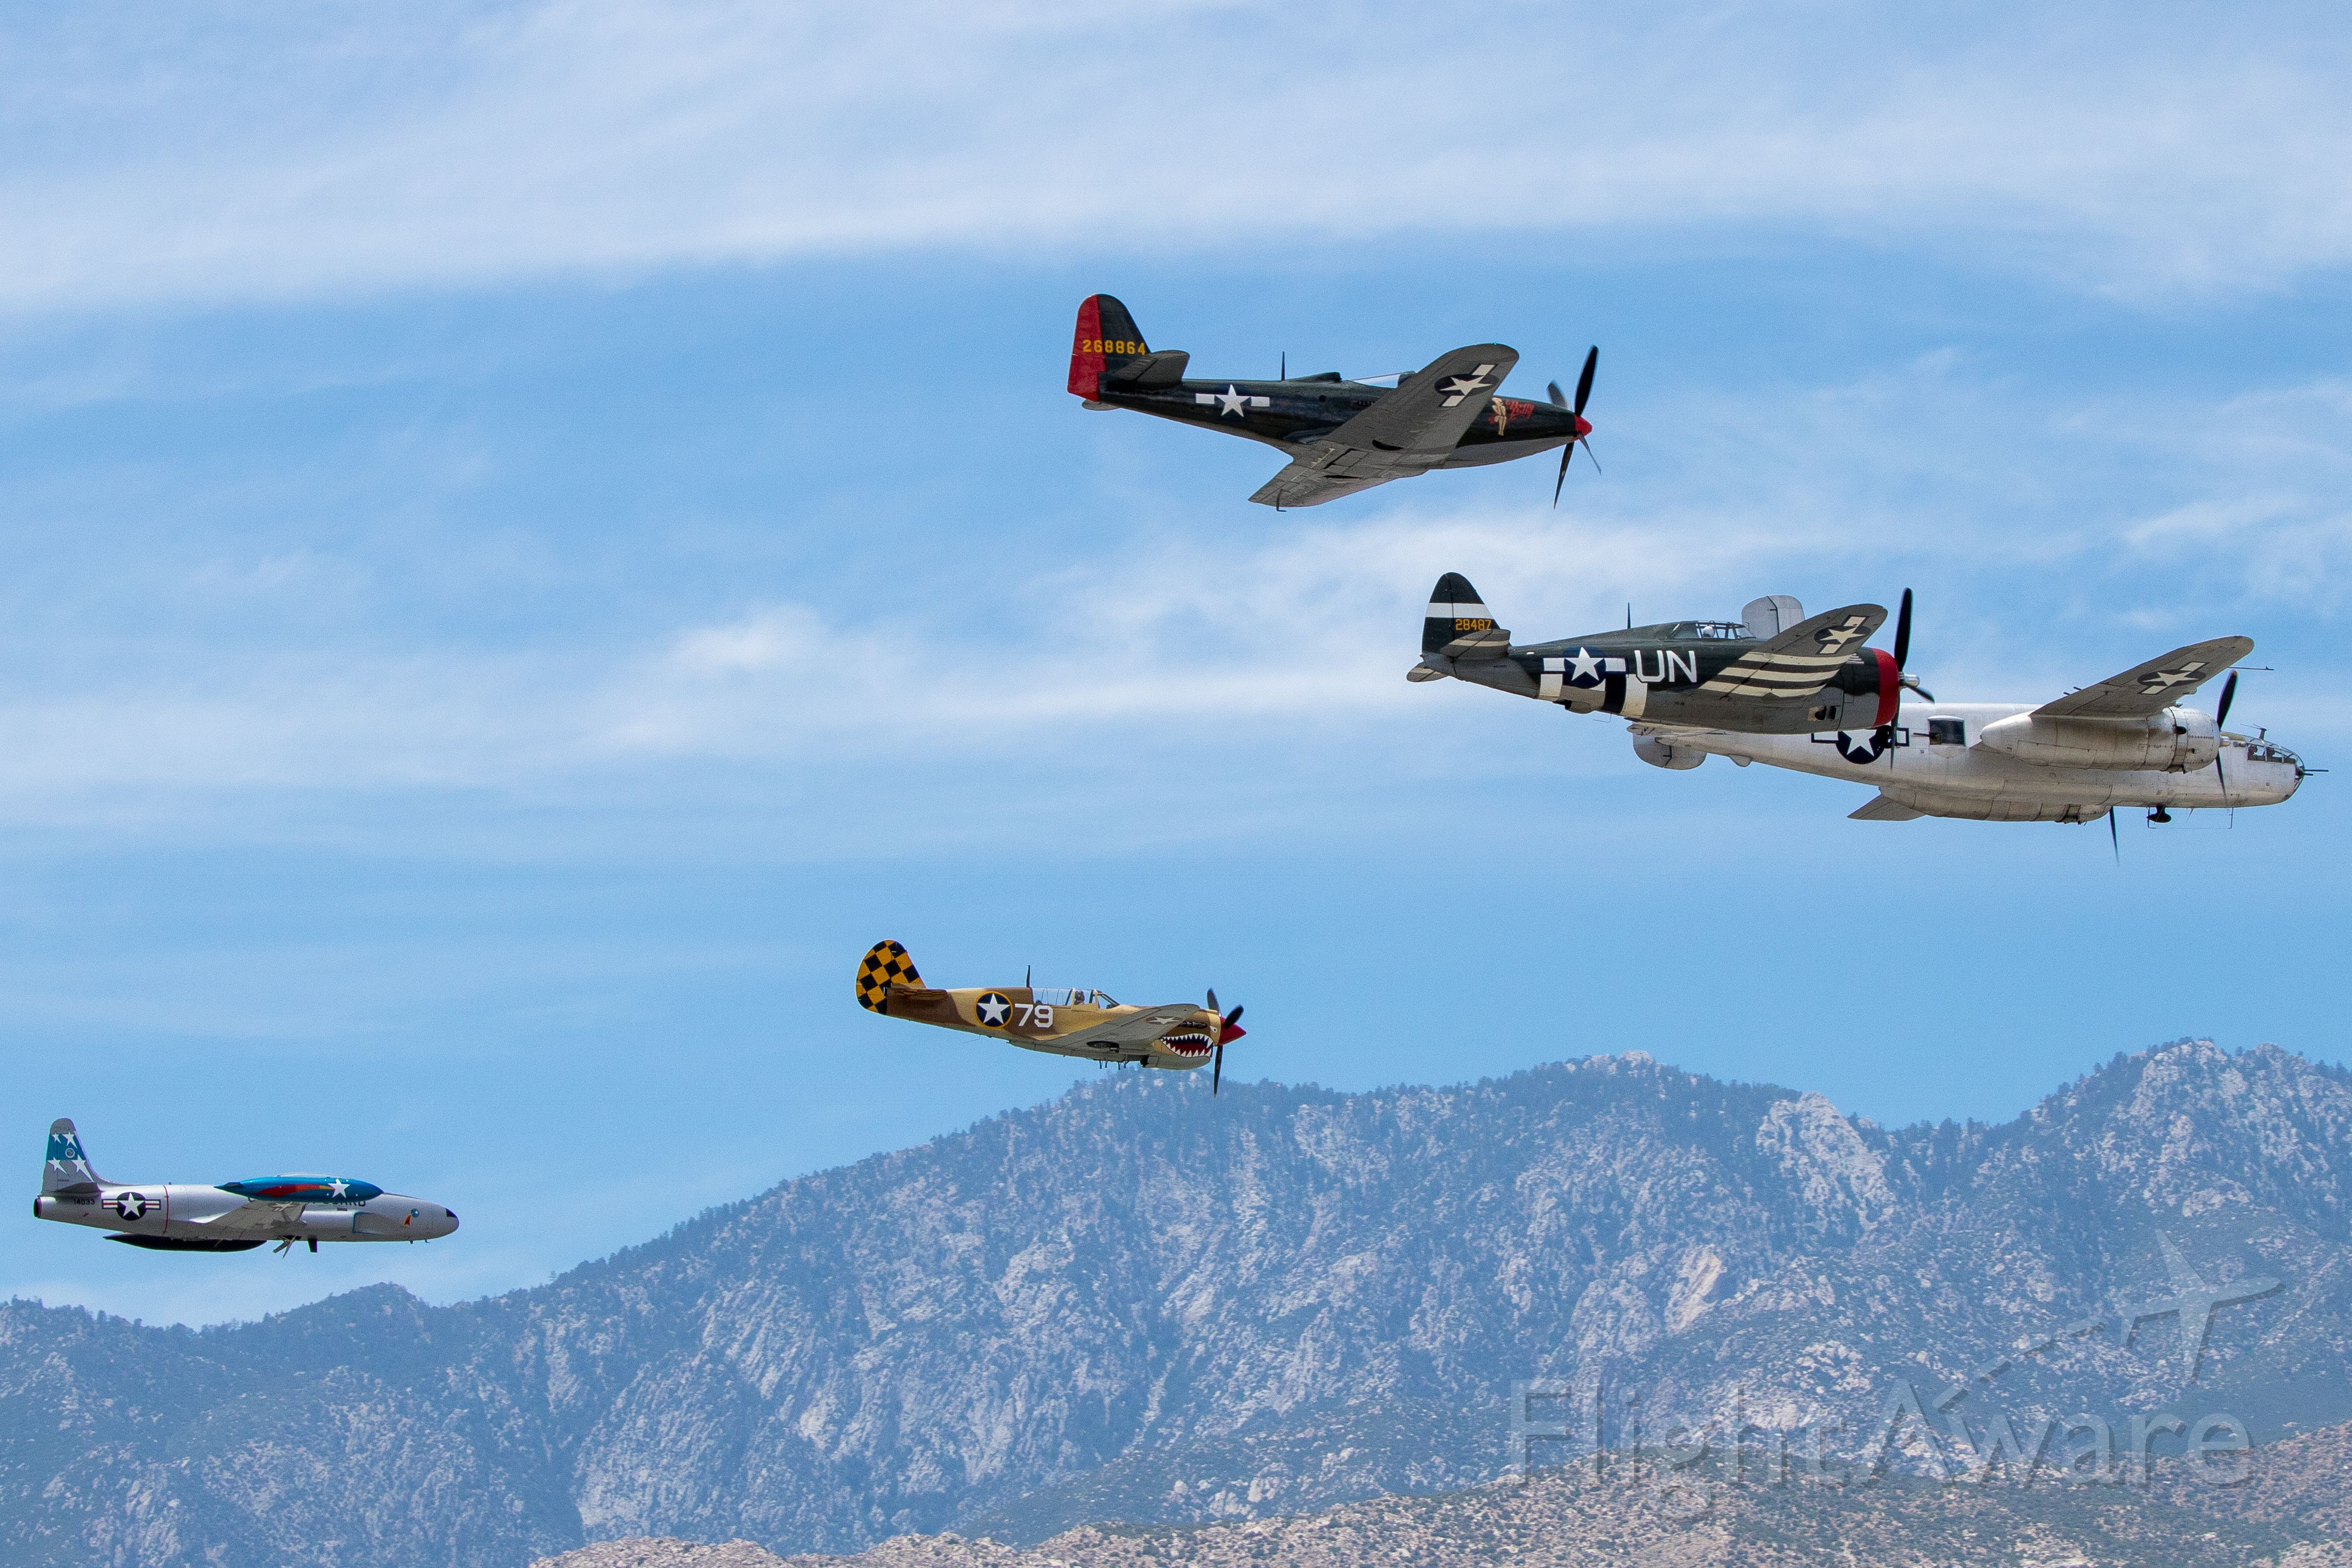 North American TB-25 Mitchell (VARIOUS) - Memorial flyby for LT. Bob Friend at the Palm Springs Air Museum